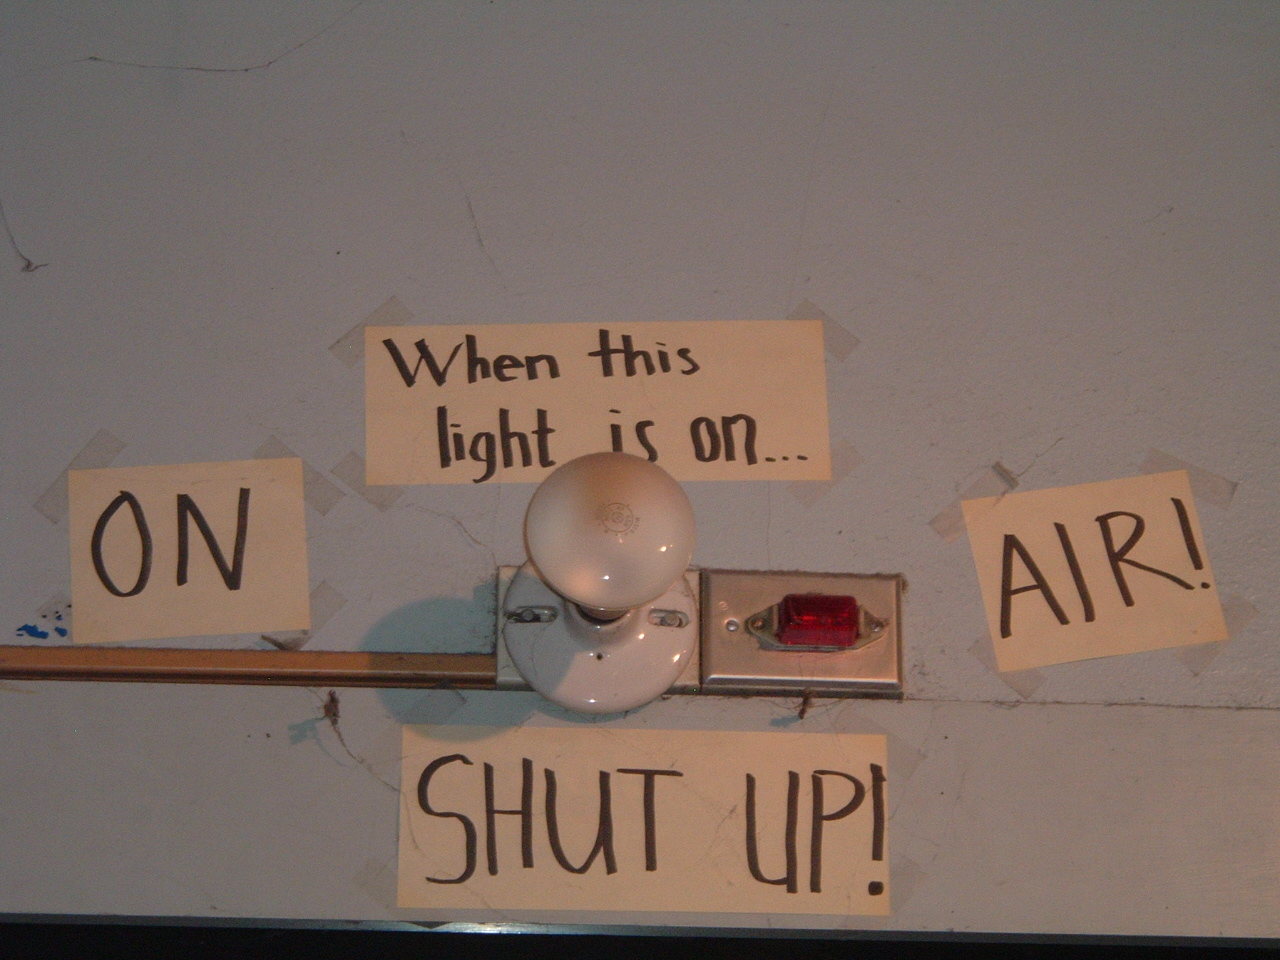 12 days of radio station signage day 11 when this light is on